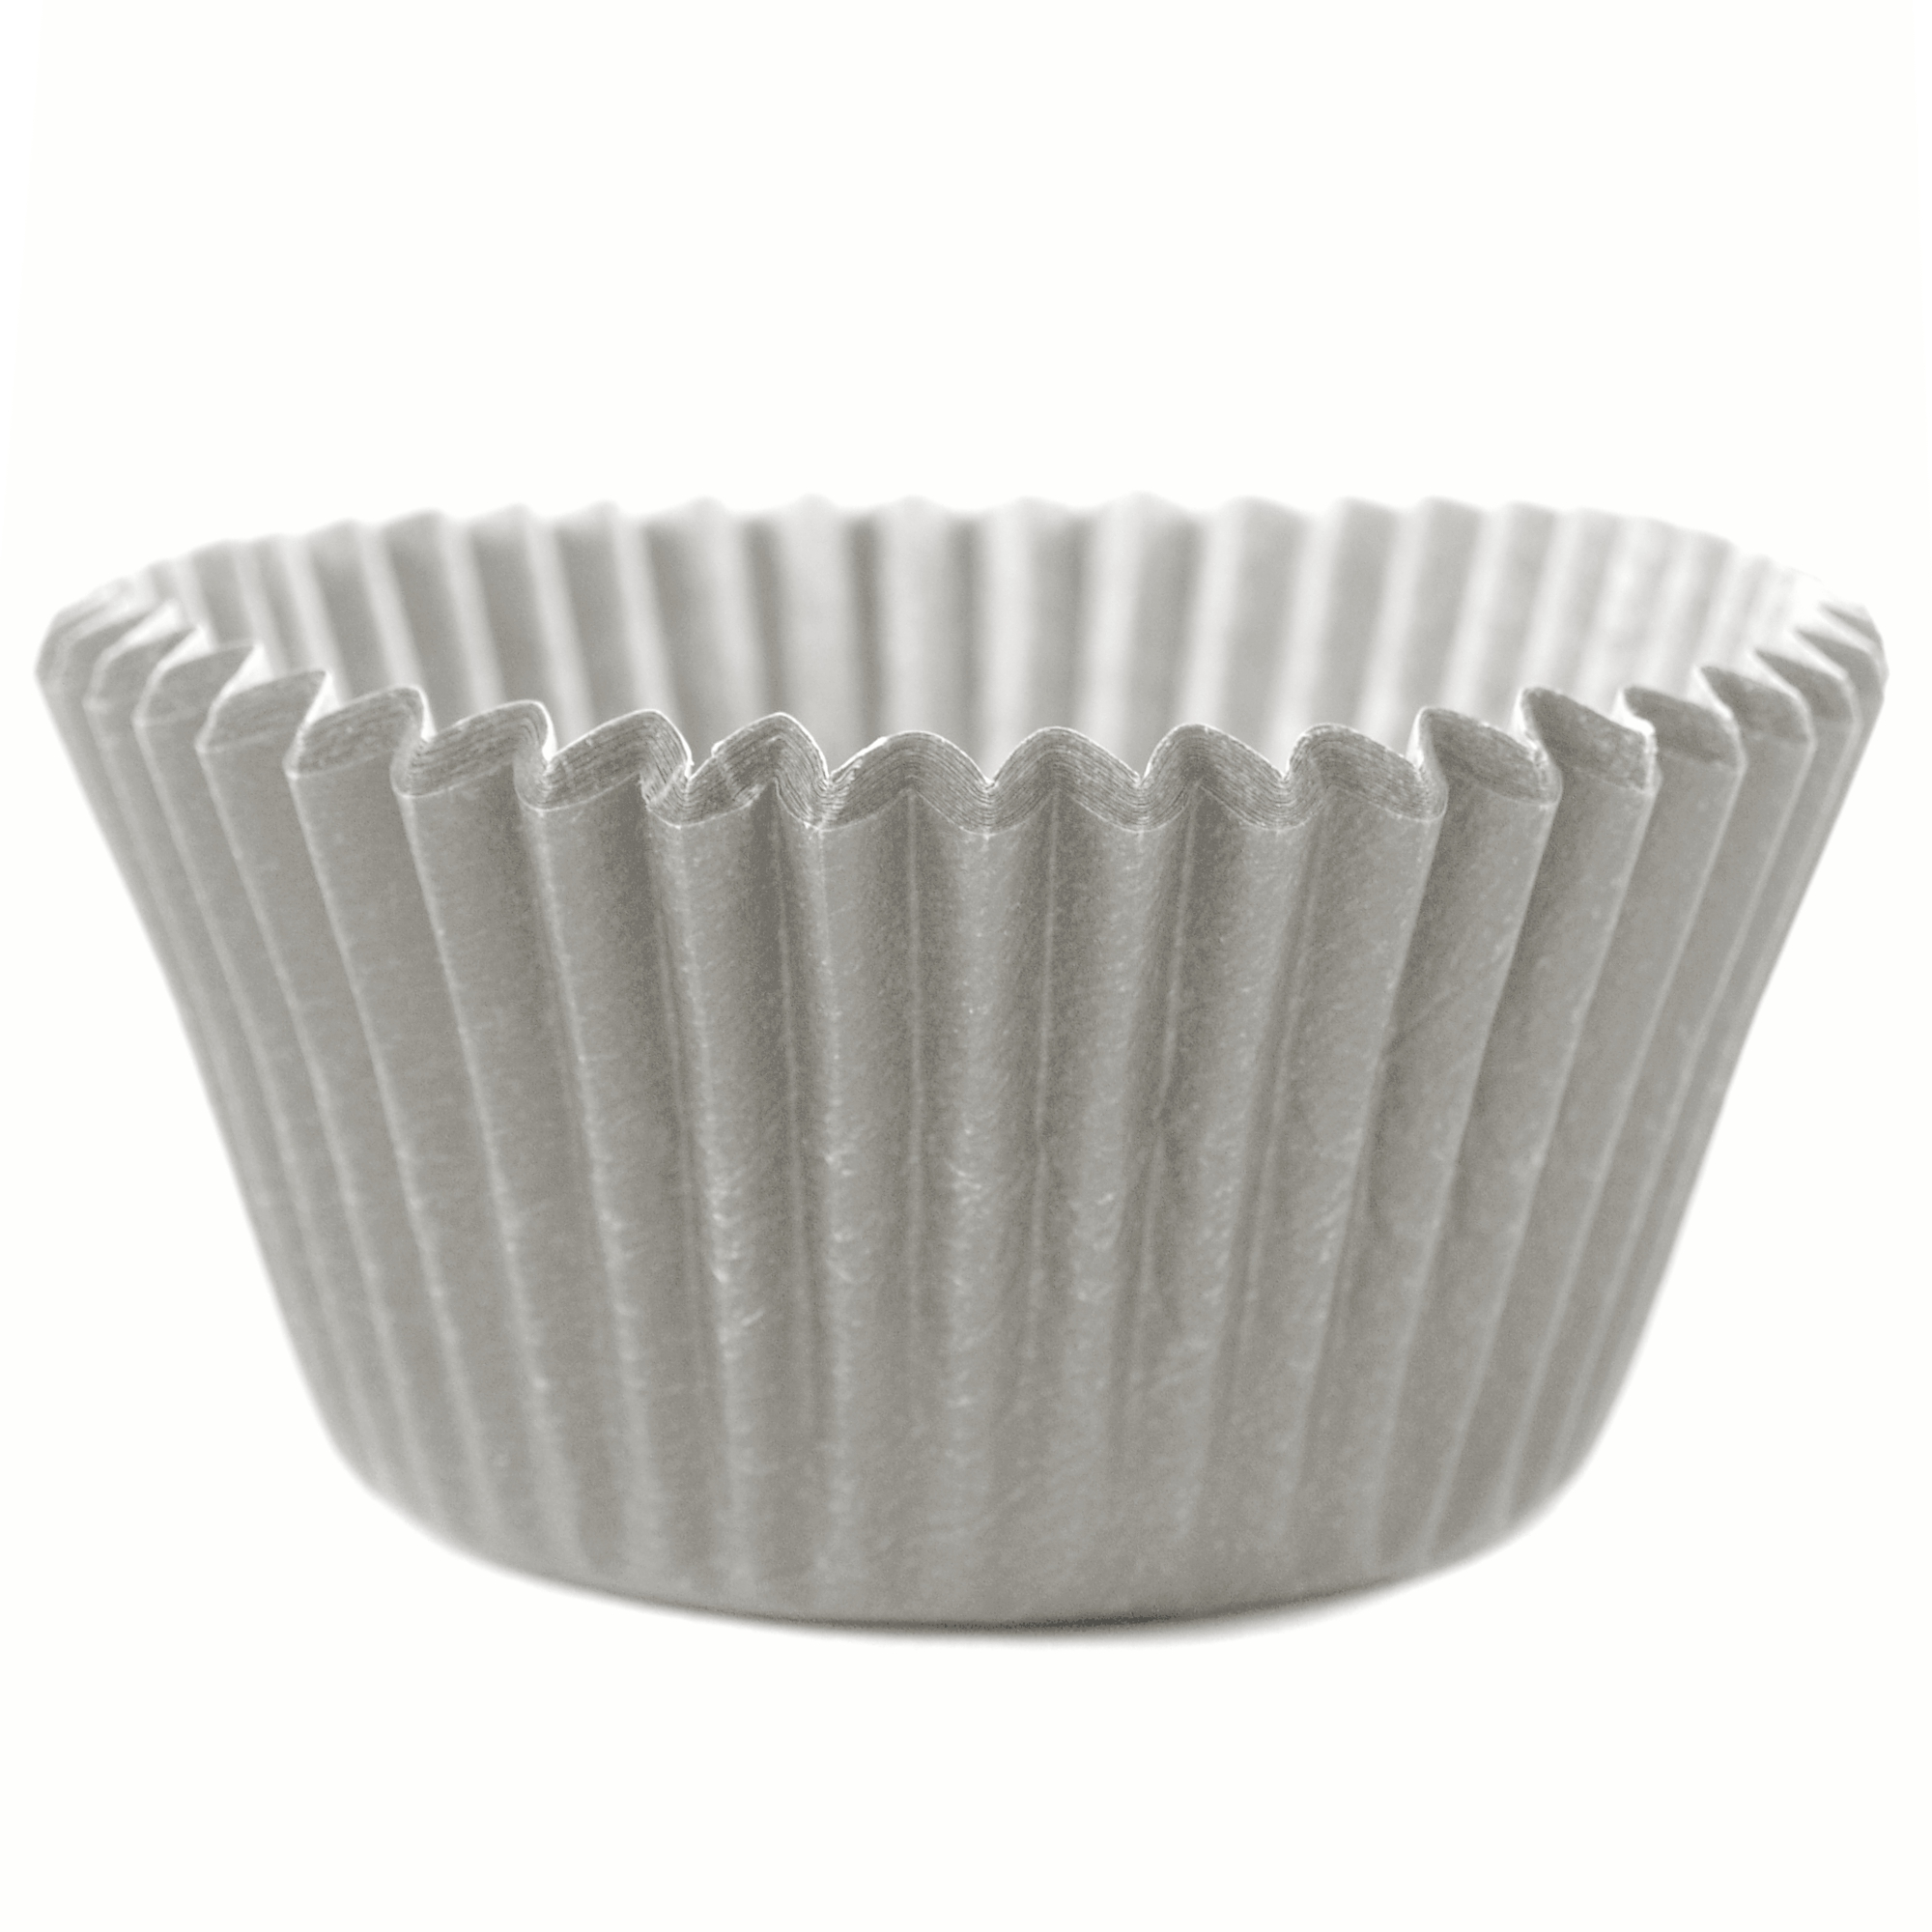 Cupcake Creations Silver Mini Baking Cup, Set of 60